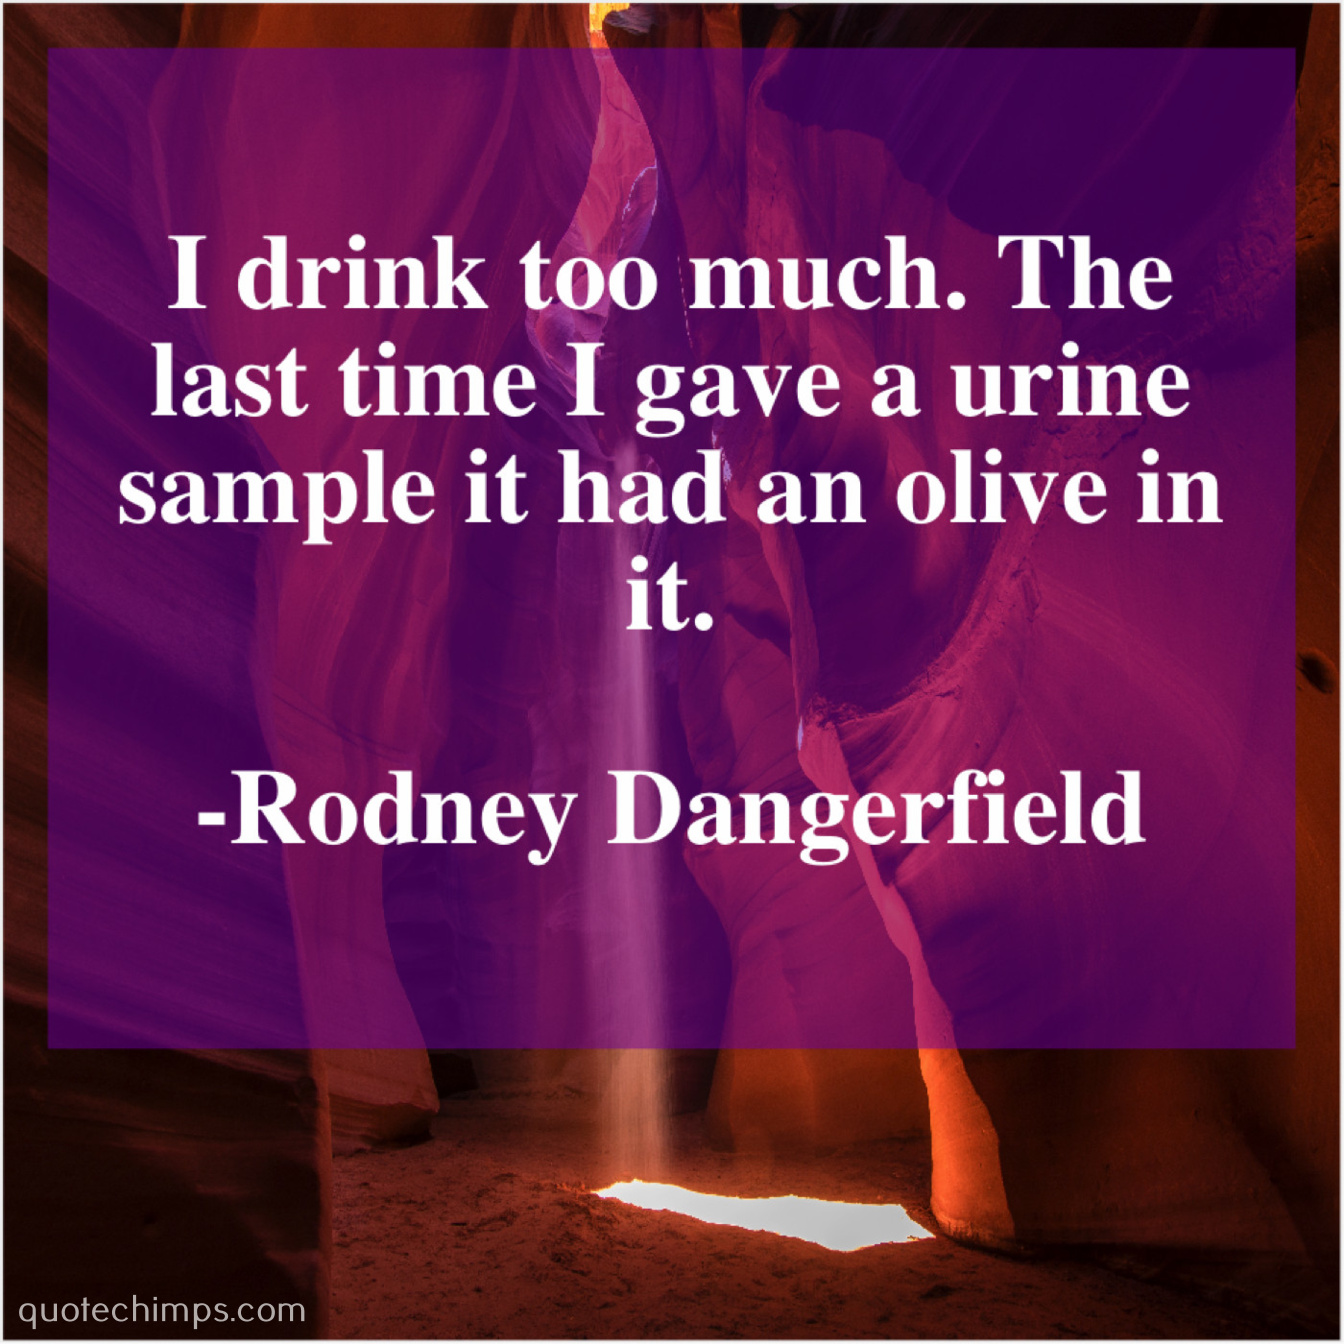 Rodney Dangerfield I Drink Too Much The